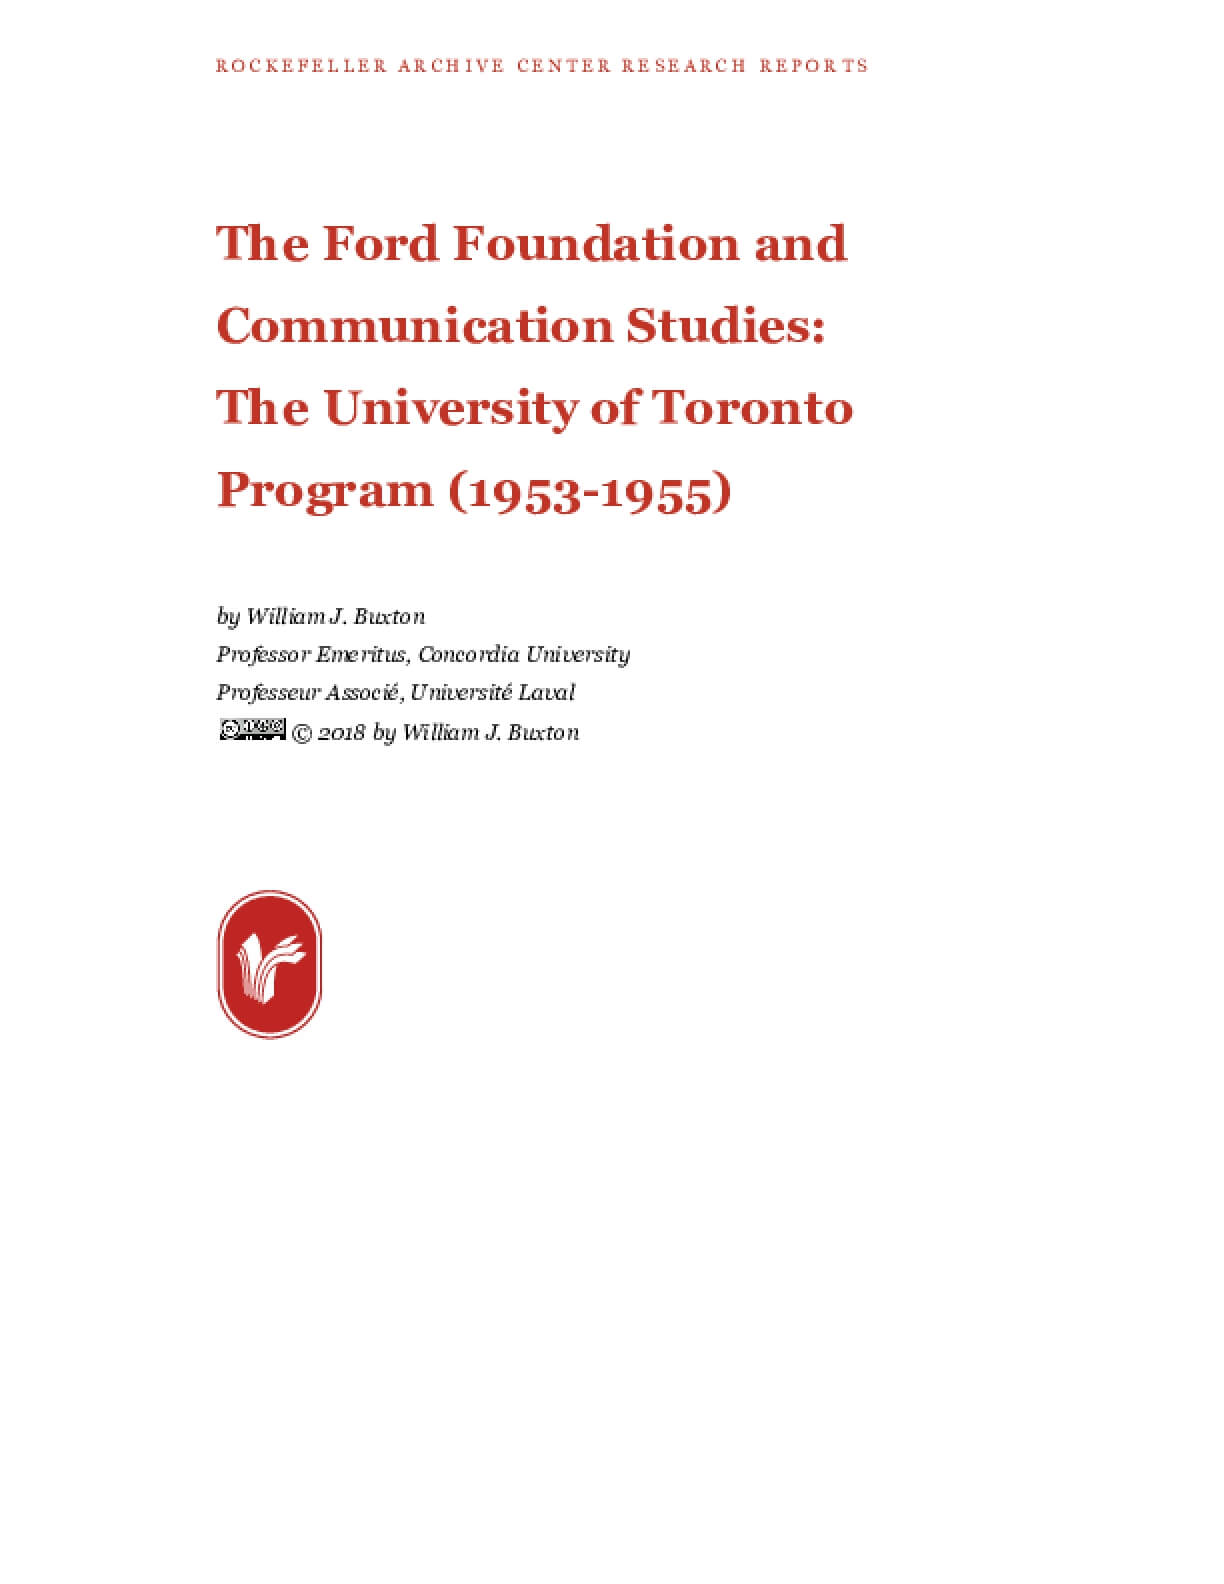 The Ford Foundation and Communication Studies: The University of Toronto Program (1953-1955)